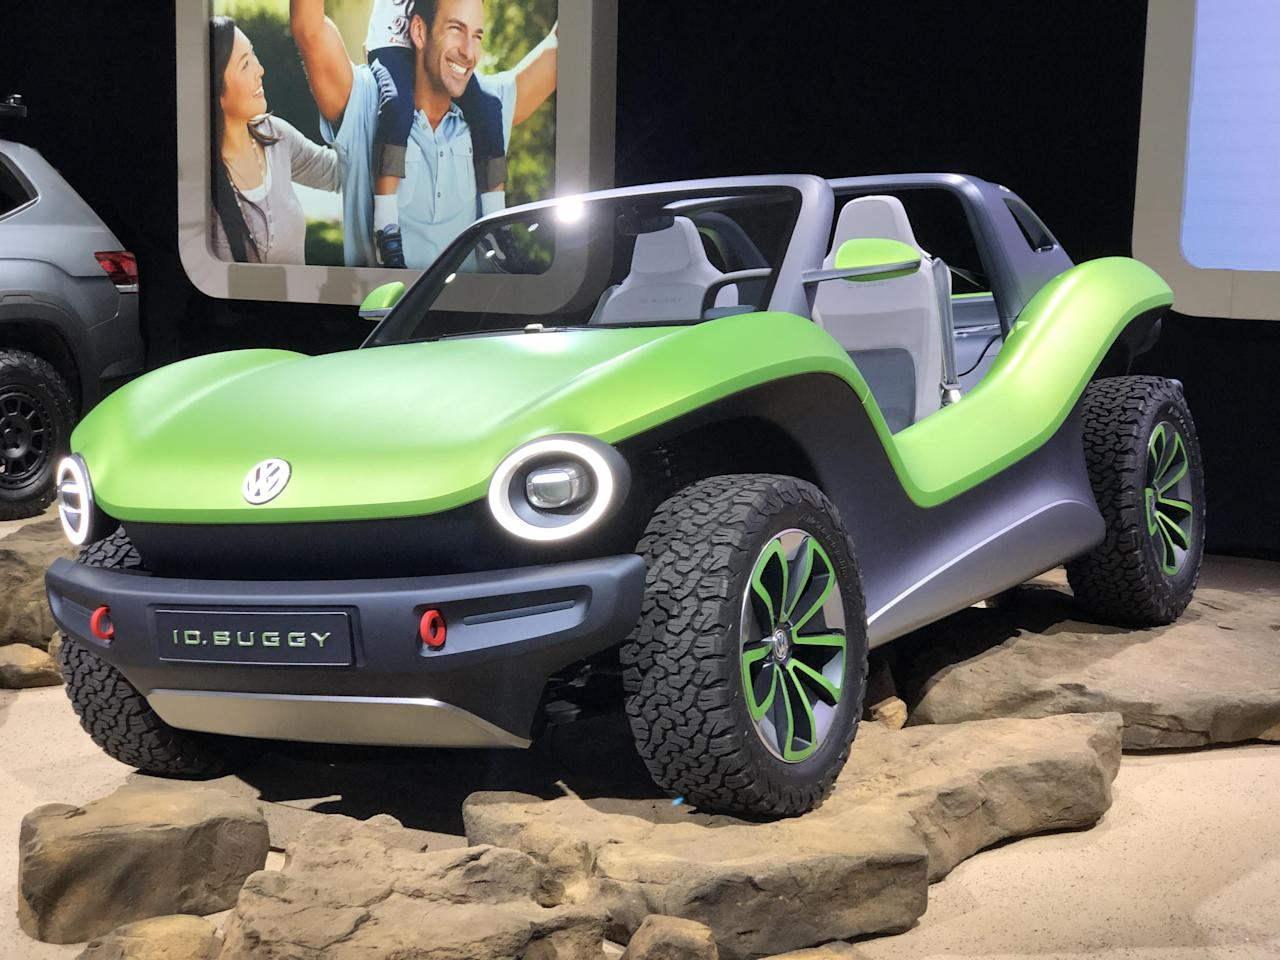 <p>The New York International Auto Show is the strange bookend to car show season, a hodgepodge of forgettable crossover releases and niche go-fast models for enthusiasts. But it has its charms, including these 6 vehicles you should know from the 2019 show floor. </p>